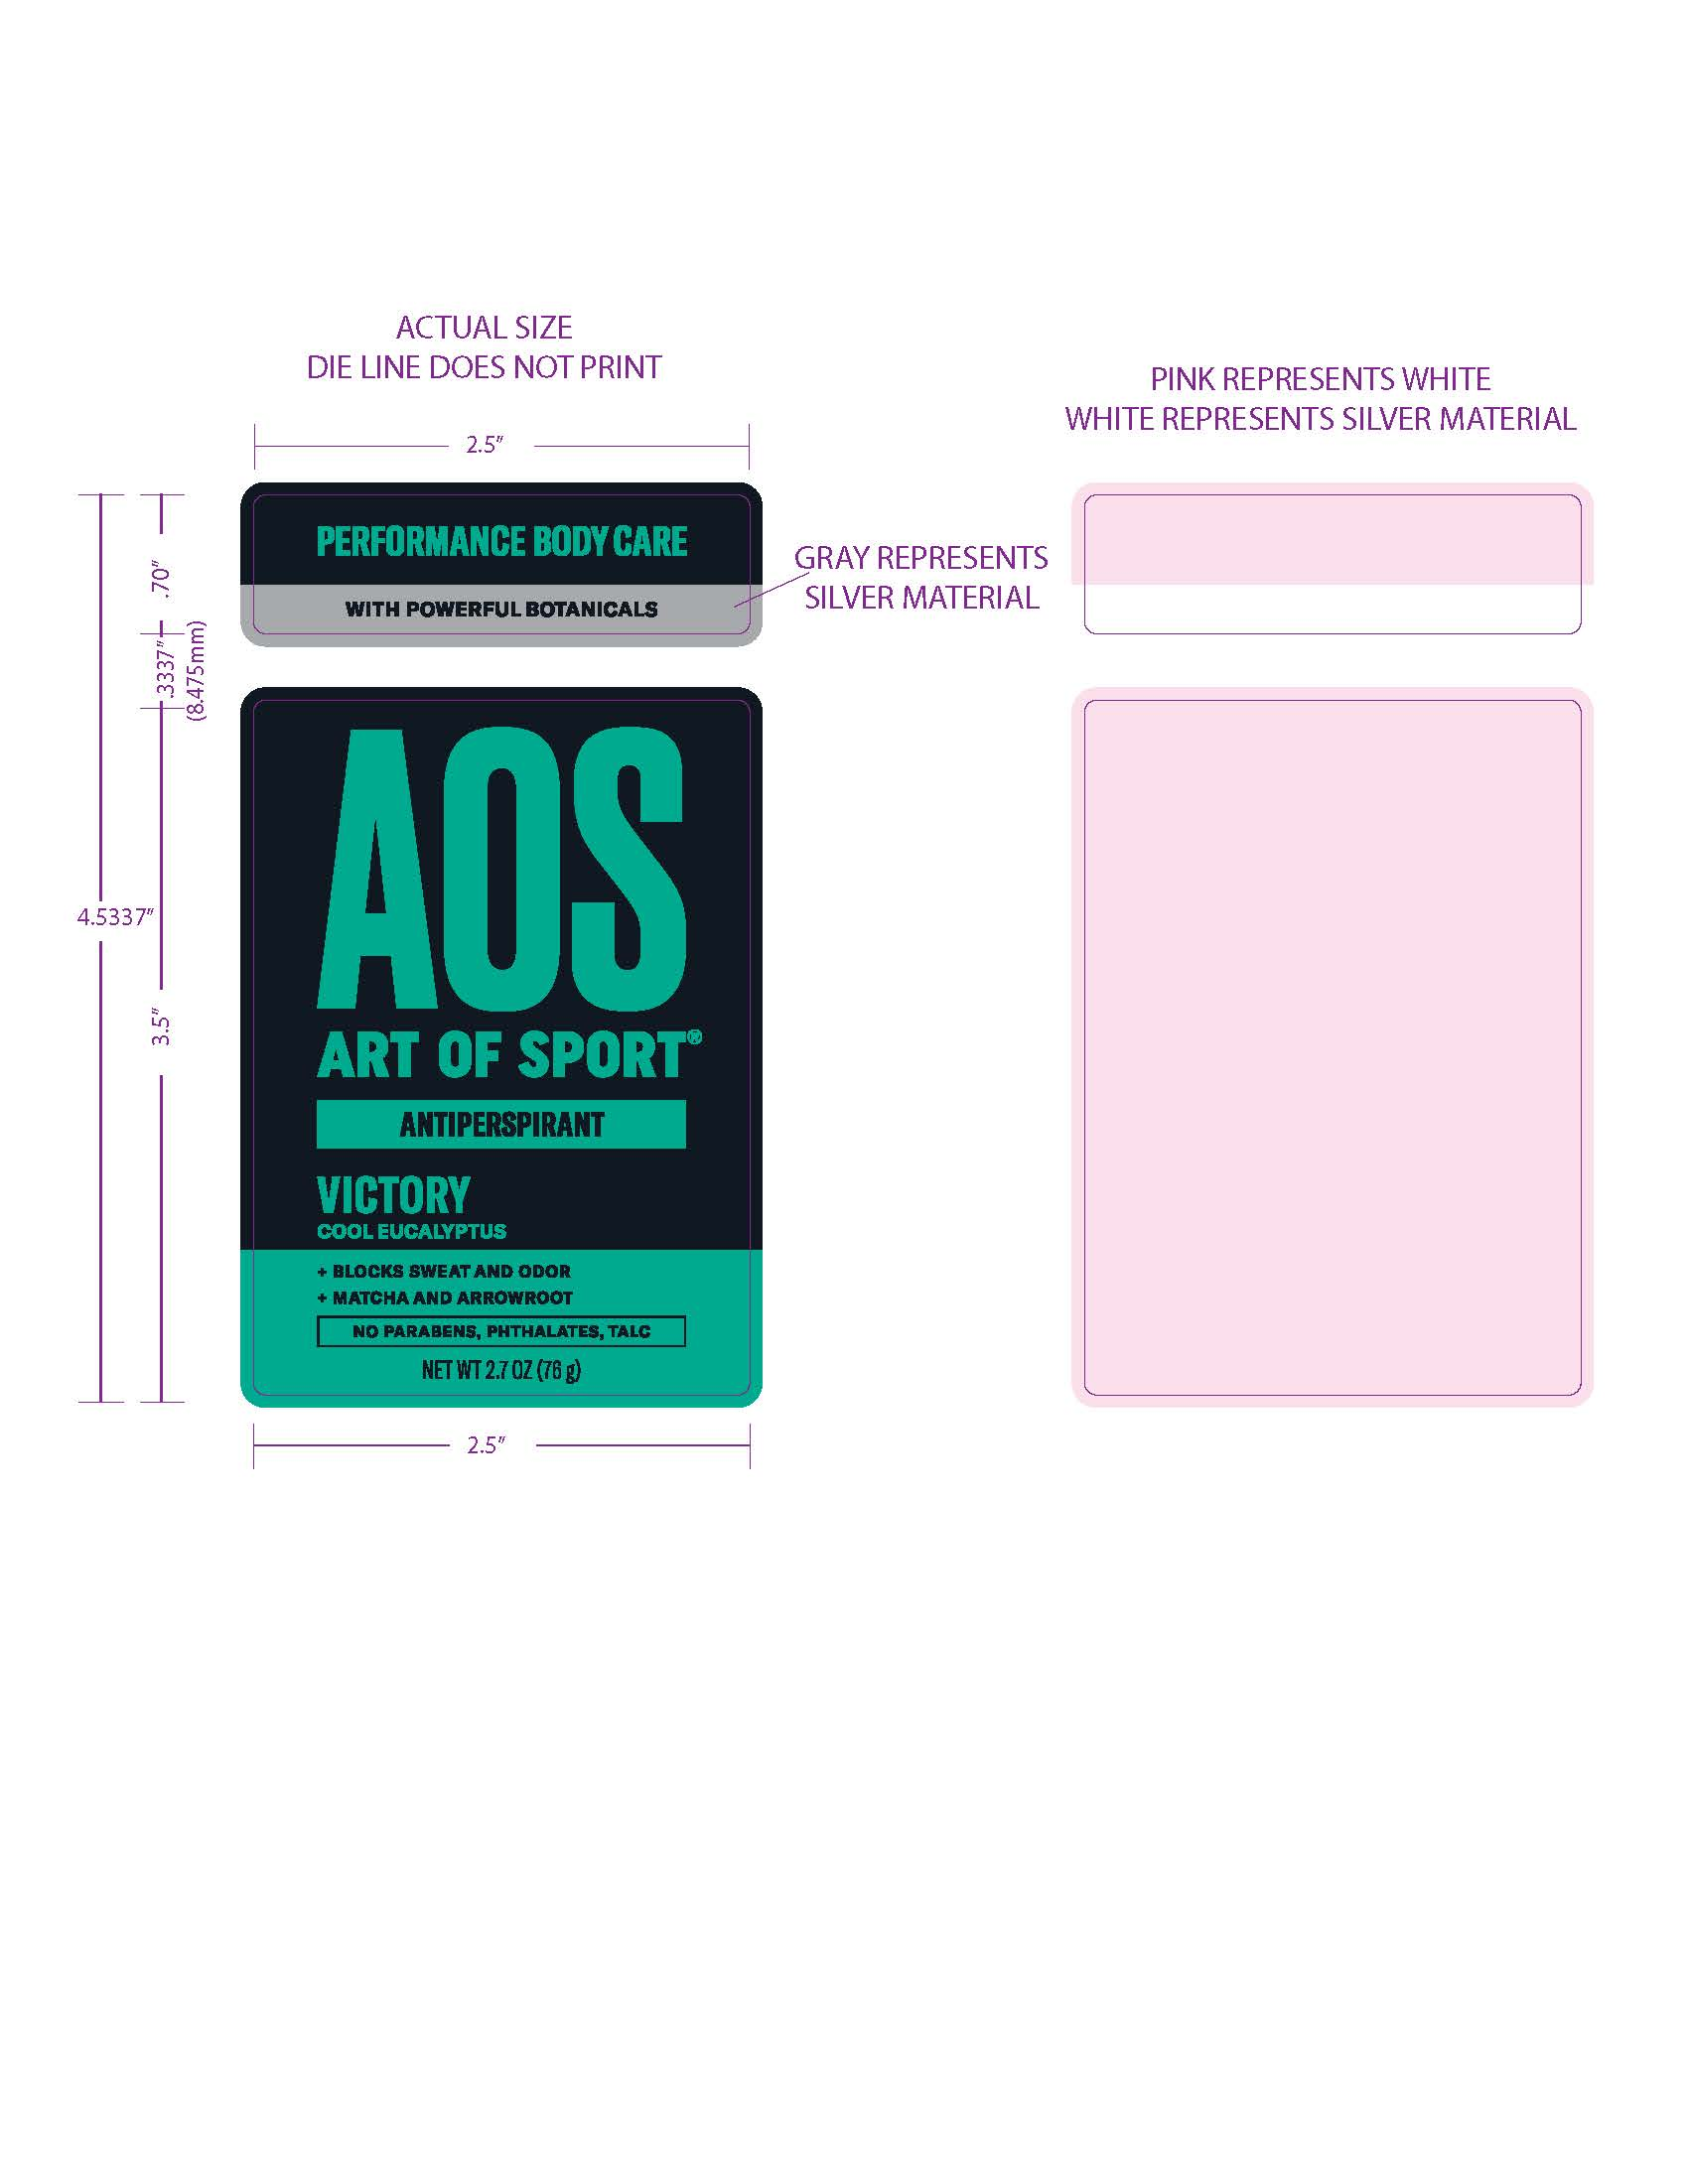 Art of Sport Victory Antiperspirant front panel